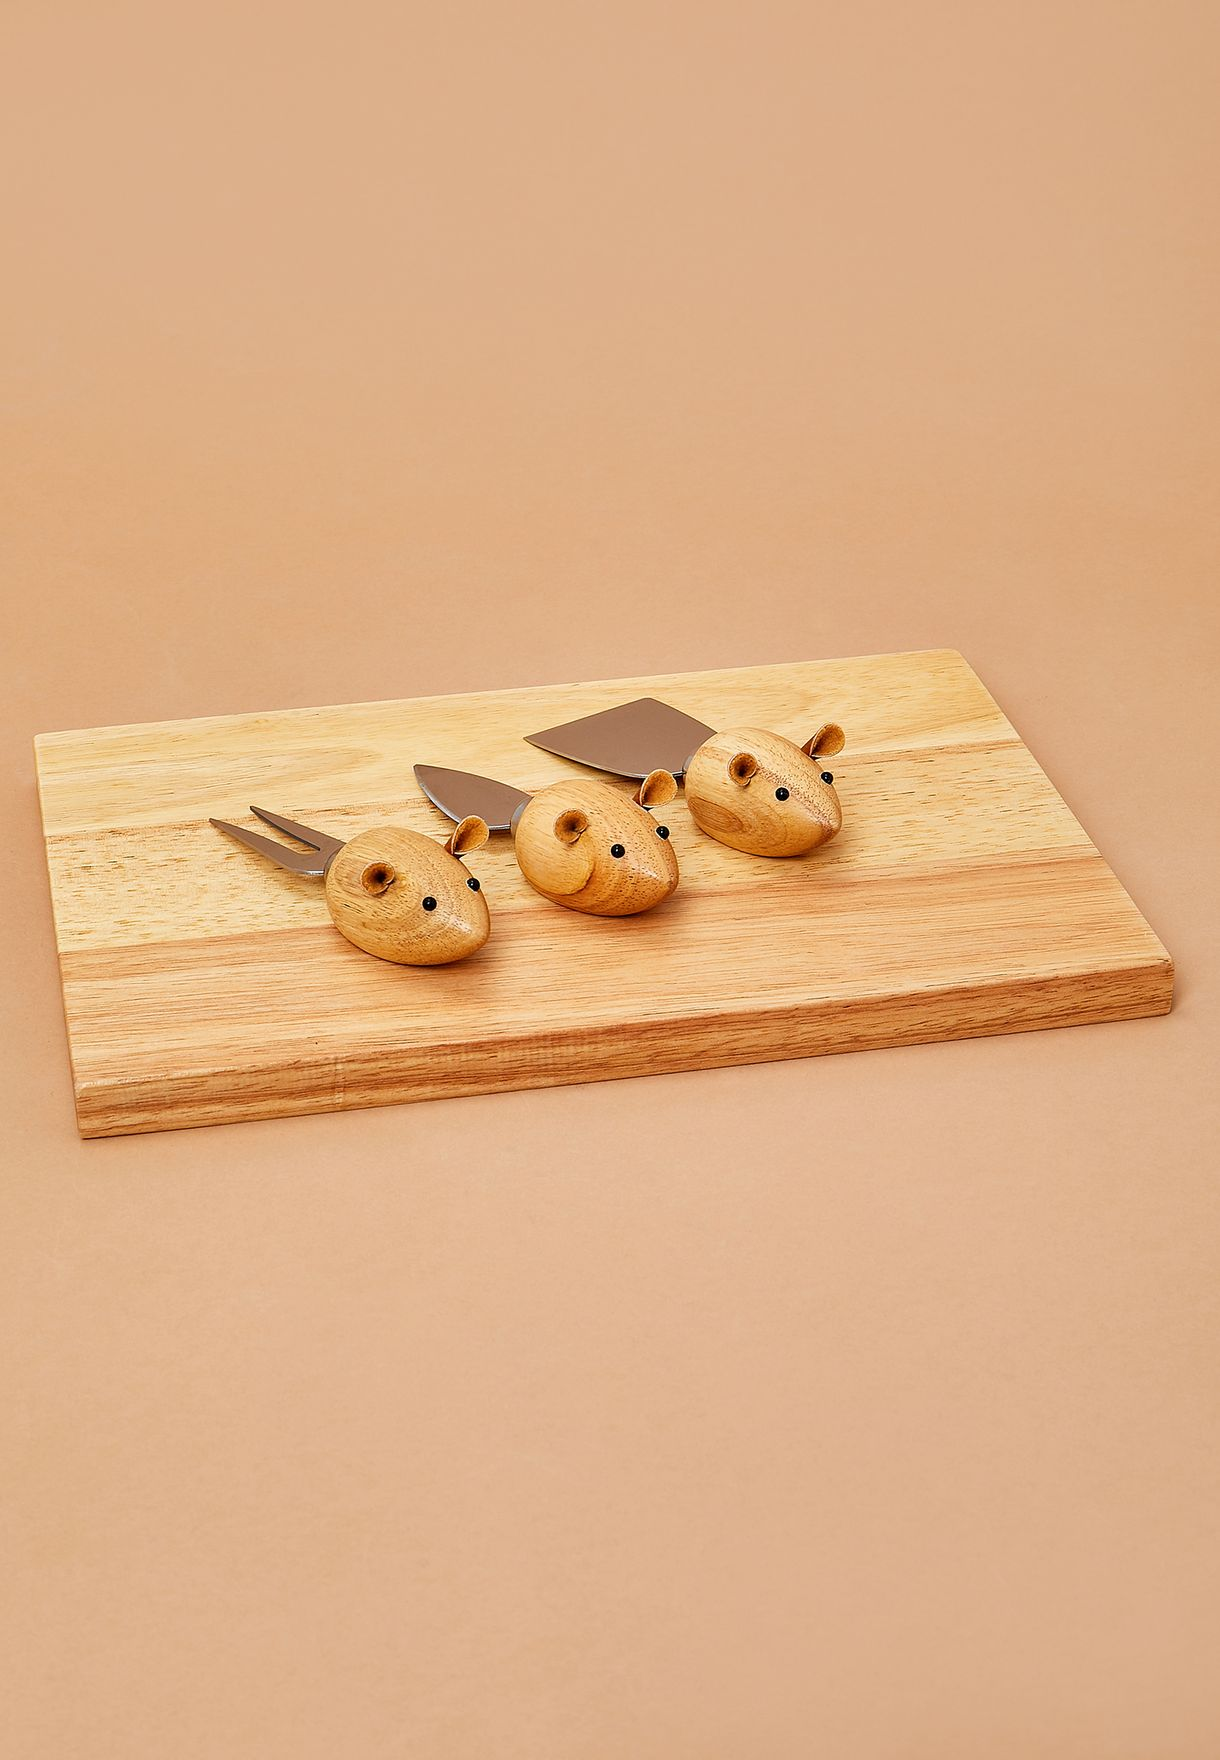 3 Mouse Knives With Cheese Board